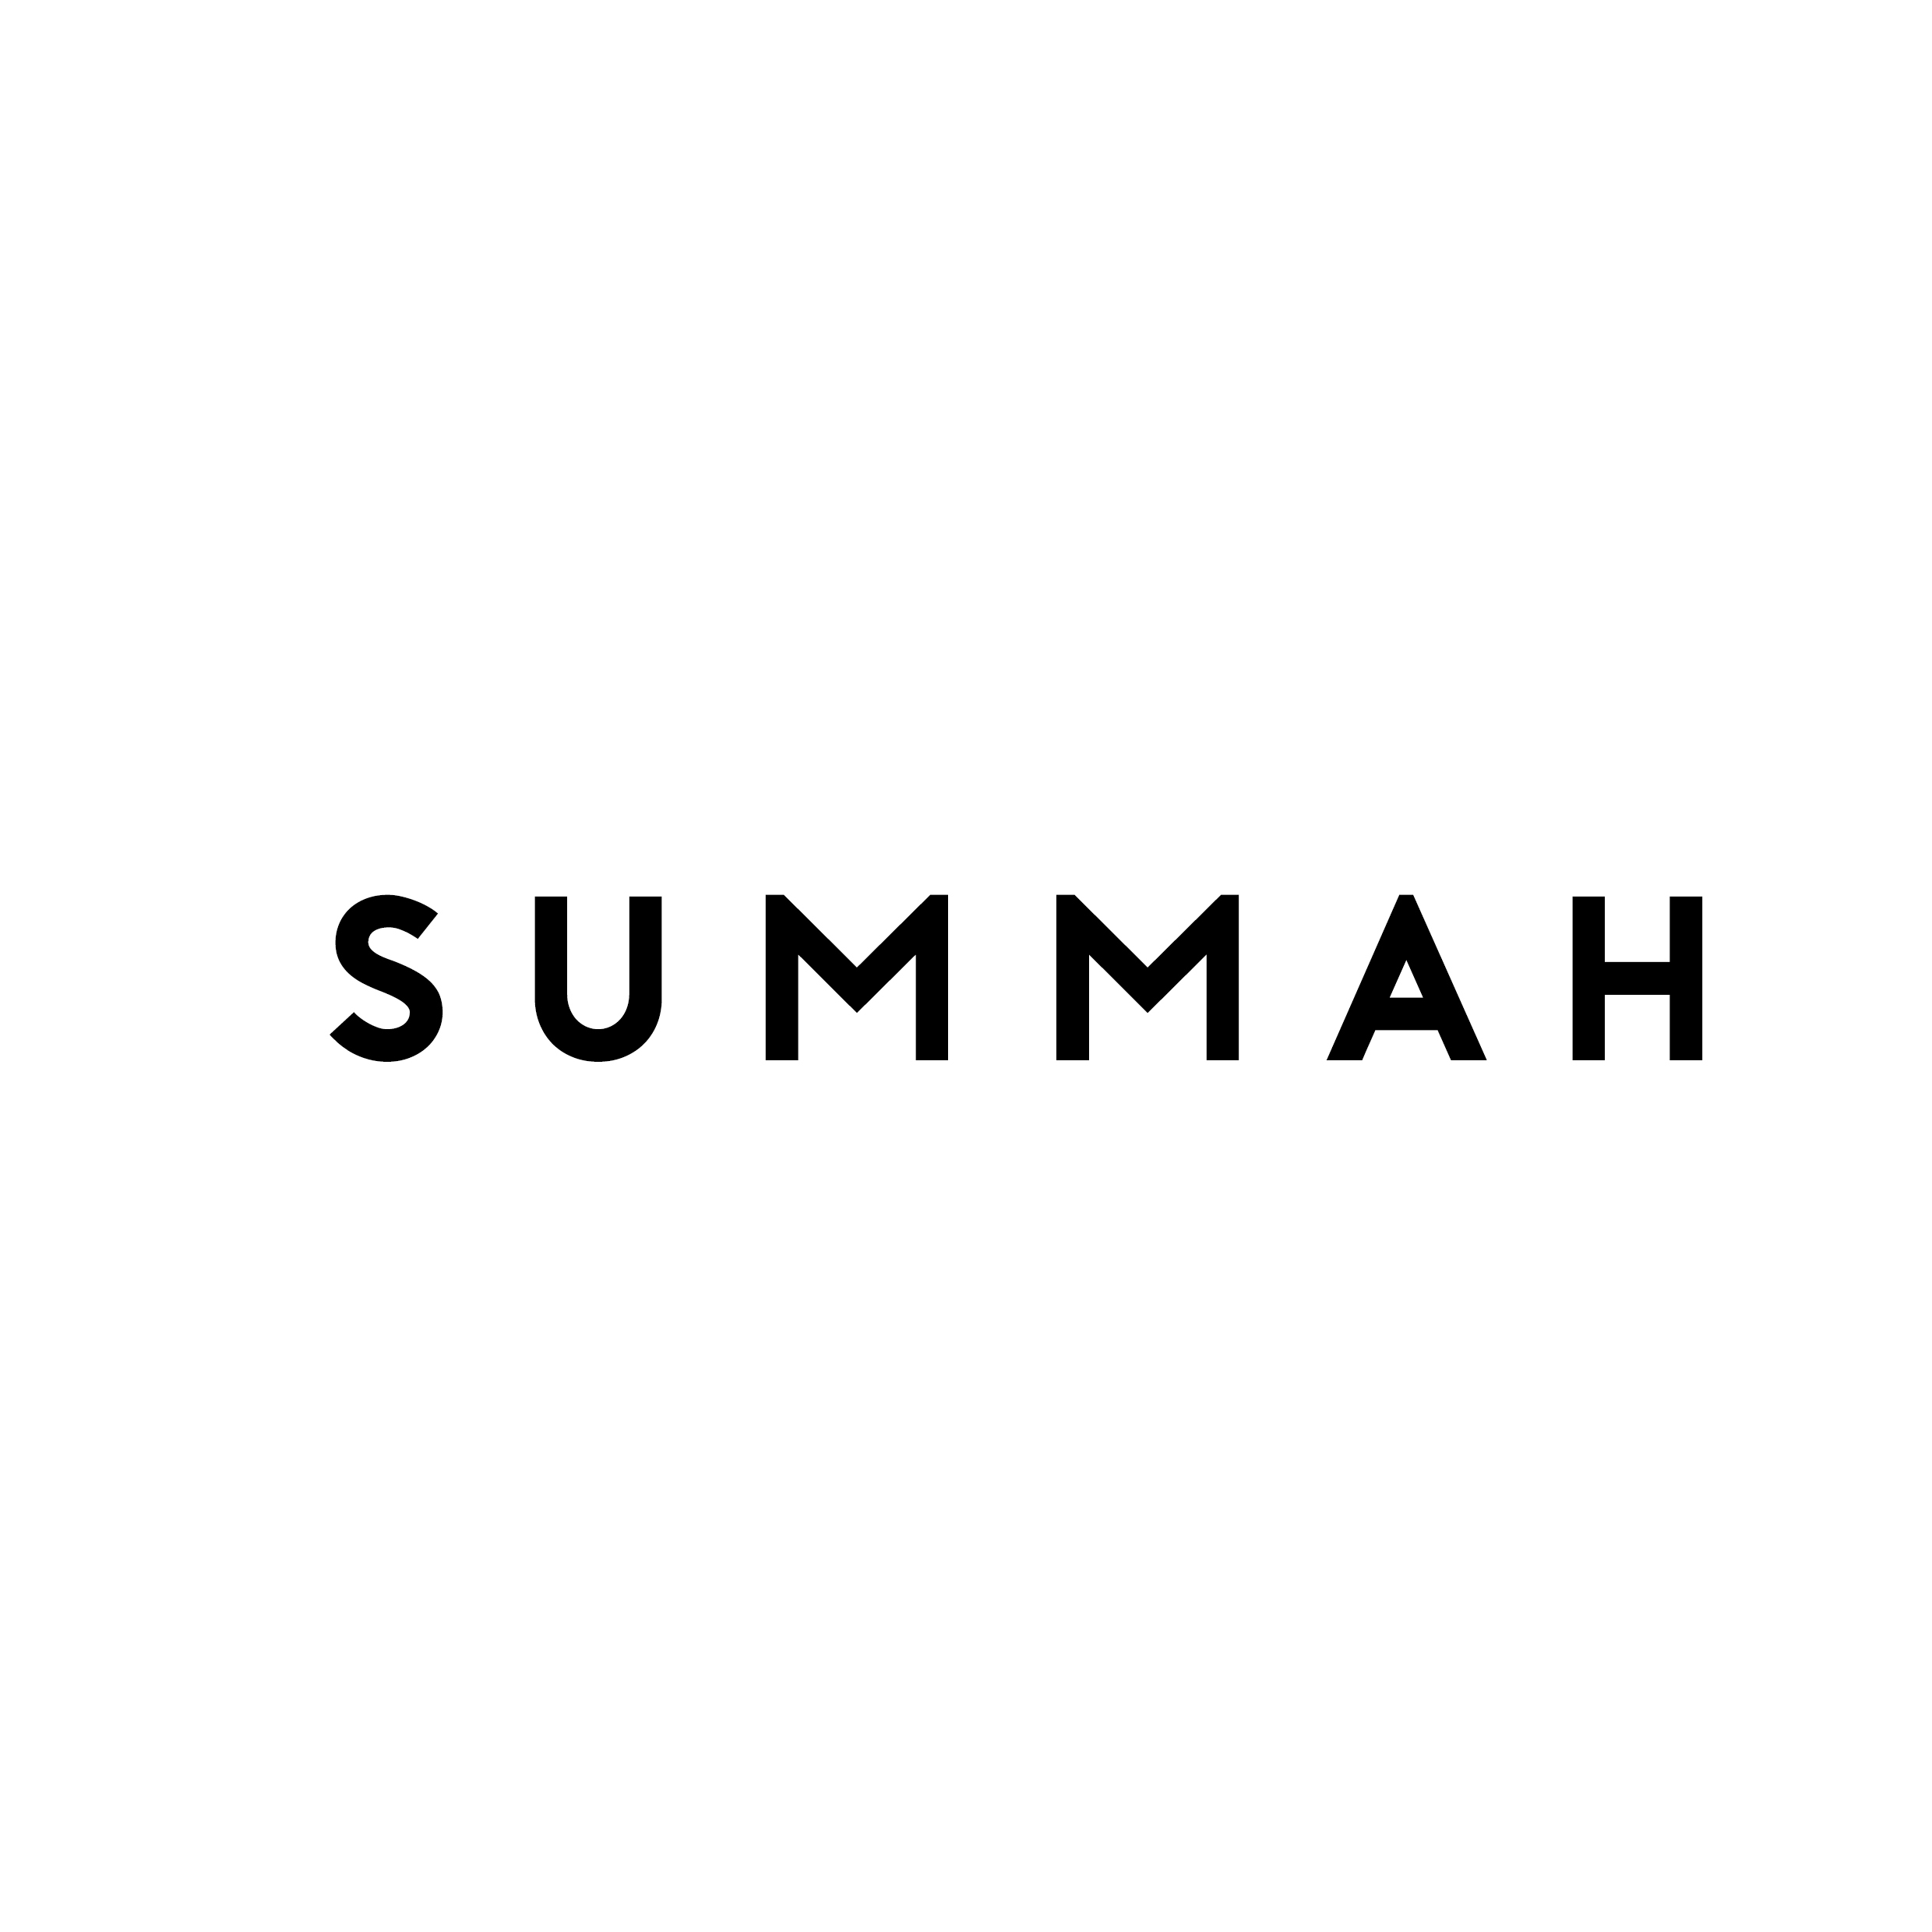 summah logo square.jpg